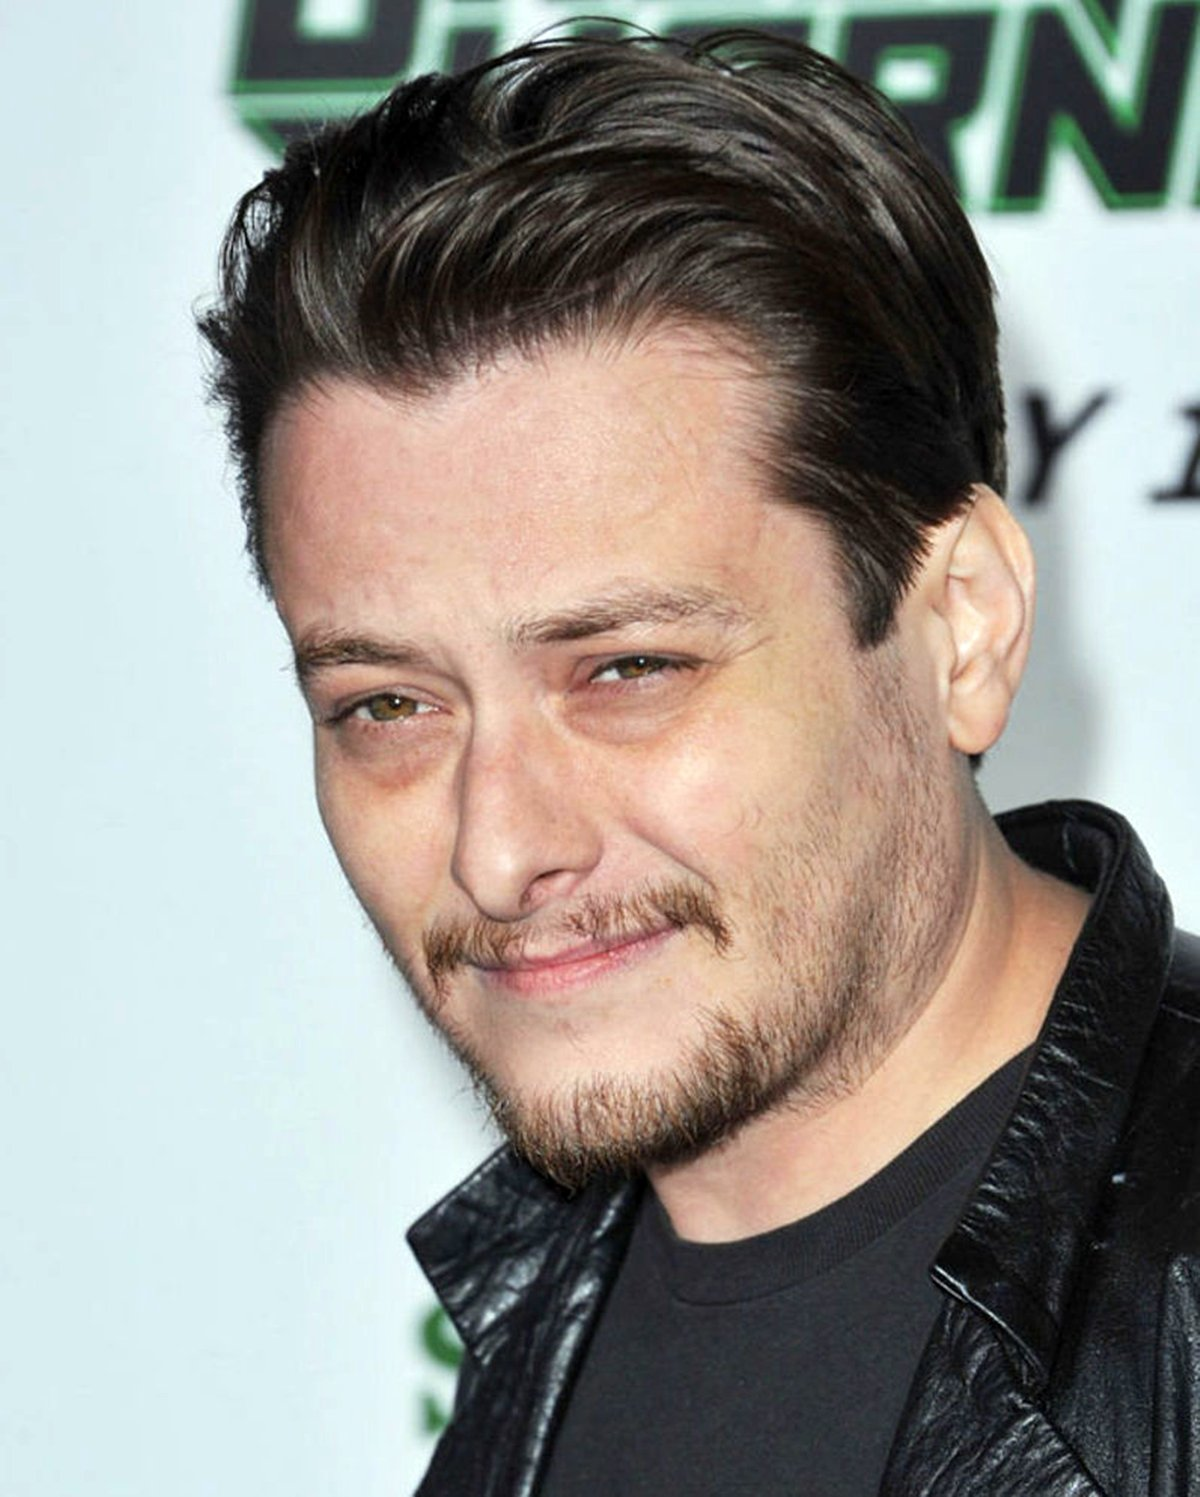 5 5 Remember Edward Furlong? He Looks Unrecognisable Today